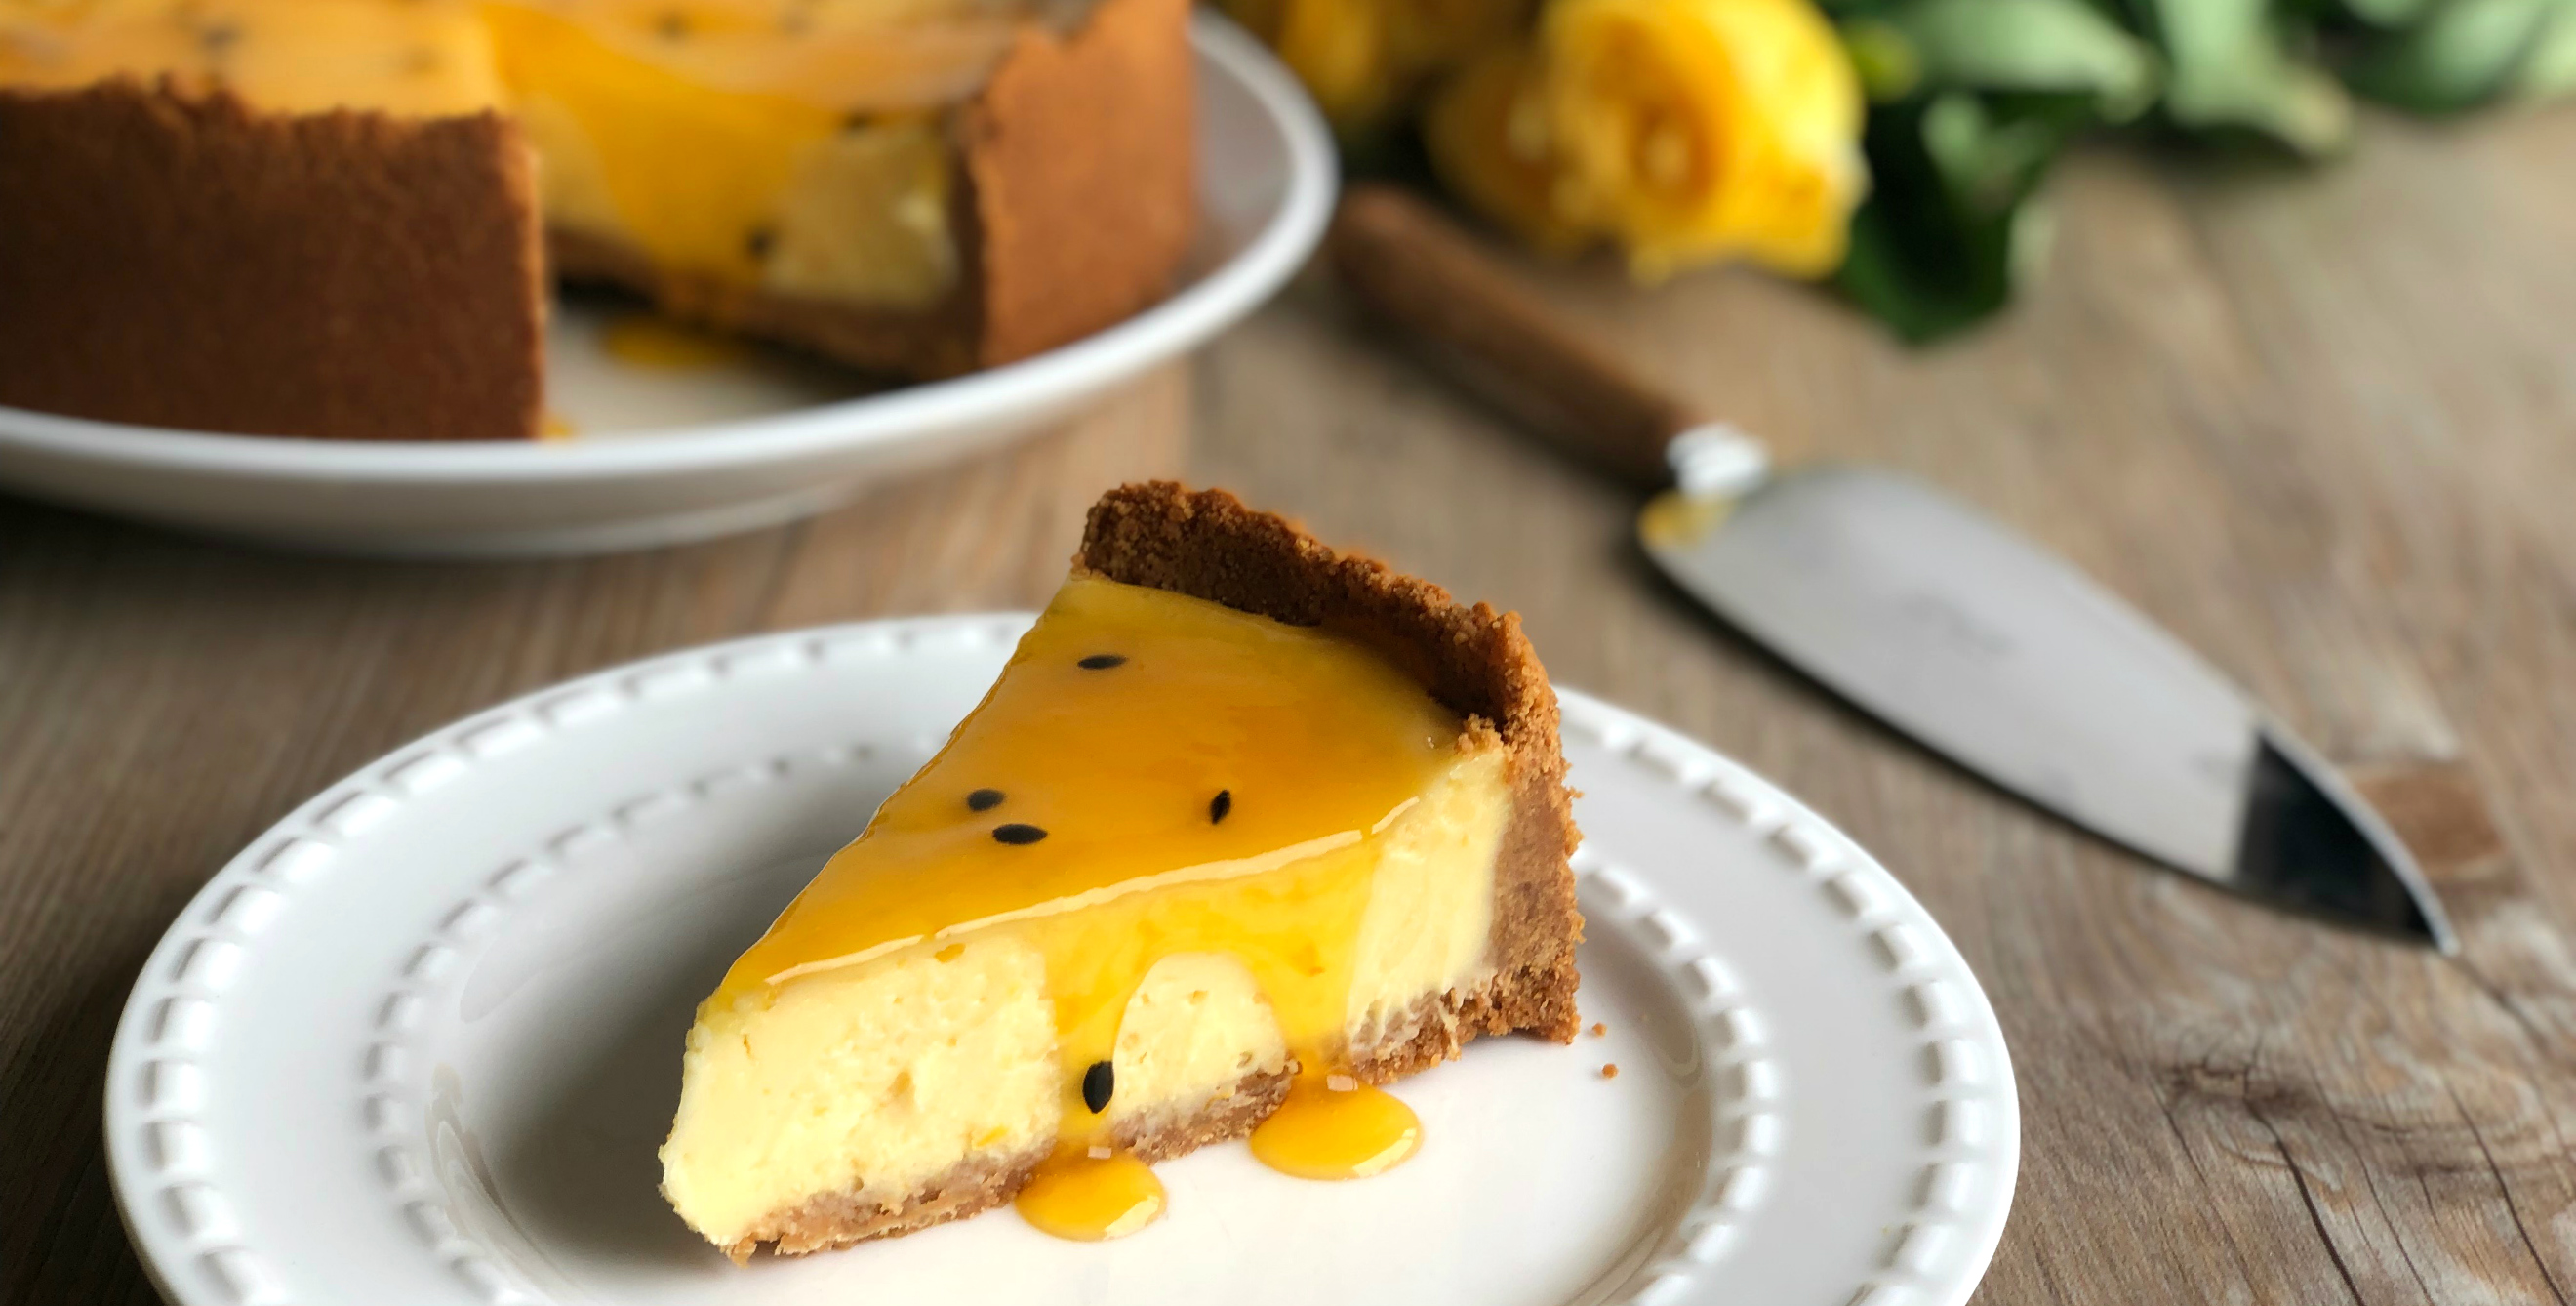 Slice of Easy Baked New York Cheesecake with Passionfruit Sauce